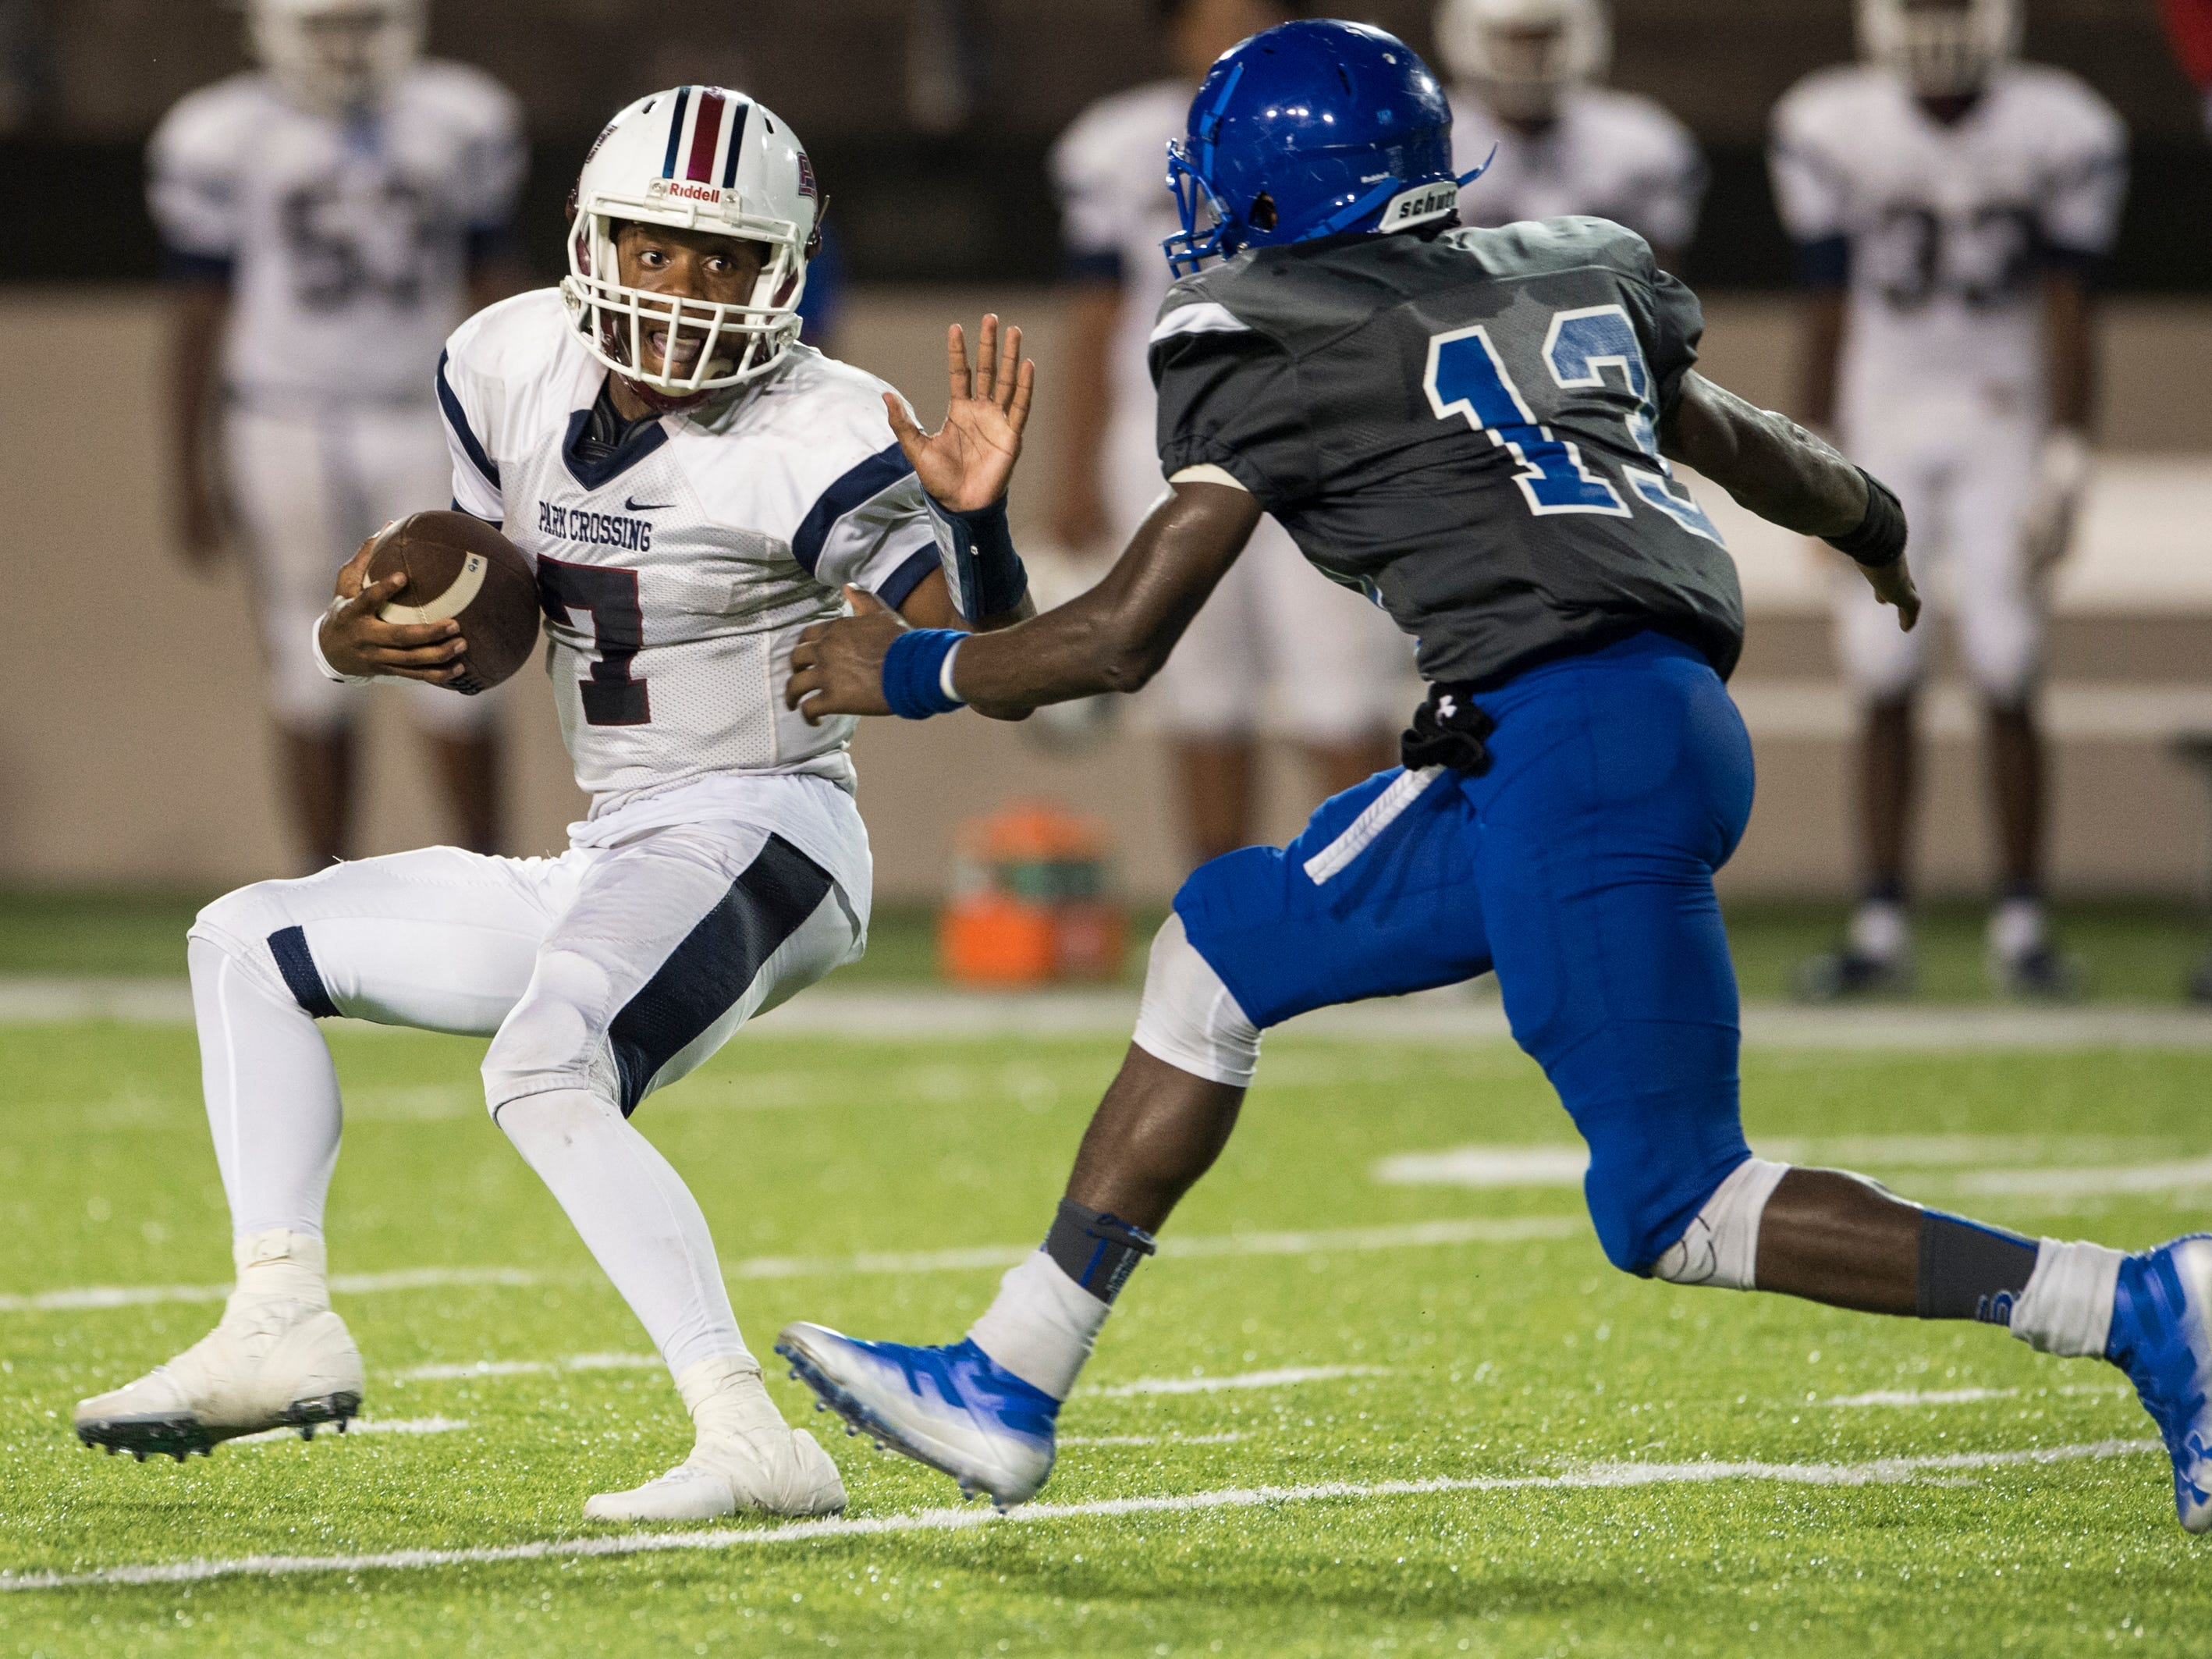 Park Crossing's Trevor Robinson (7) is sacked by Lanier's Alazavia Berry (13) at Cramton Bowl in Montgomery, Ala., on Friday, Sept. 21, 2018. Lanier defeated Park Crossing 35-28.